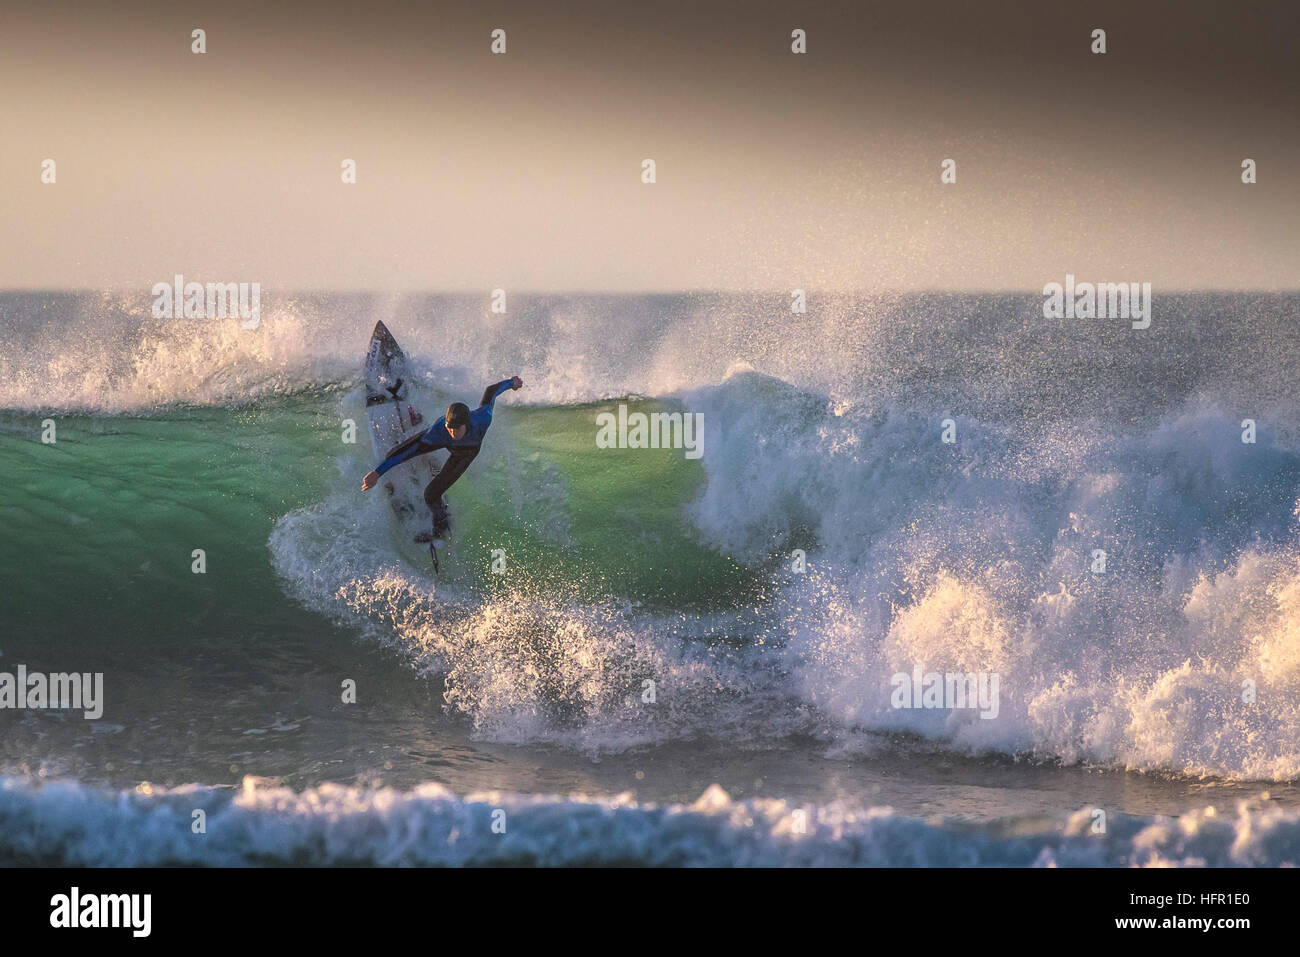 Exhilarating surfing action action at Fistral in Newquay, Cornwall, England. UK. - Stock Image